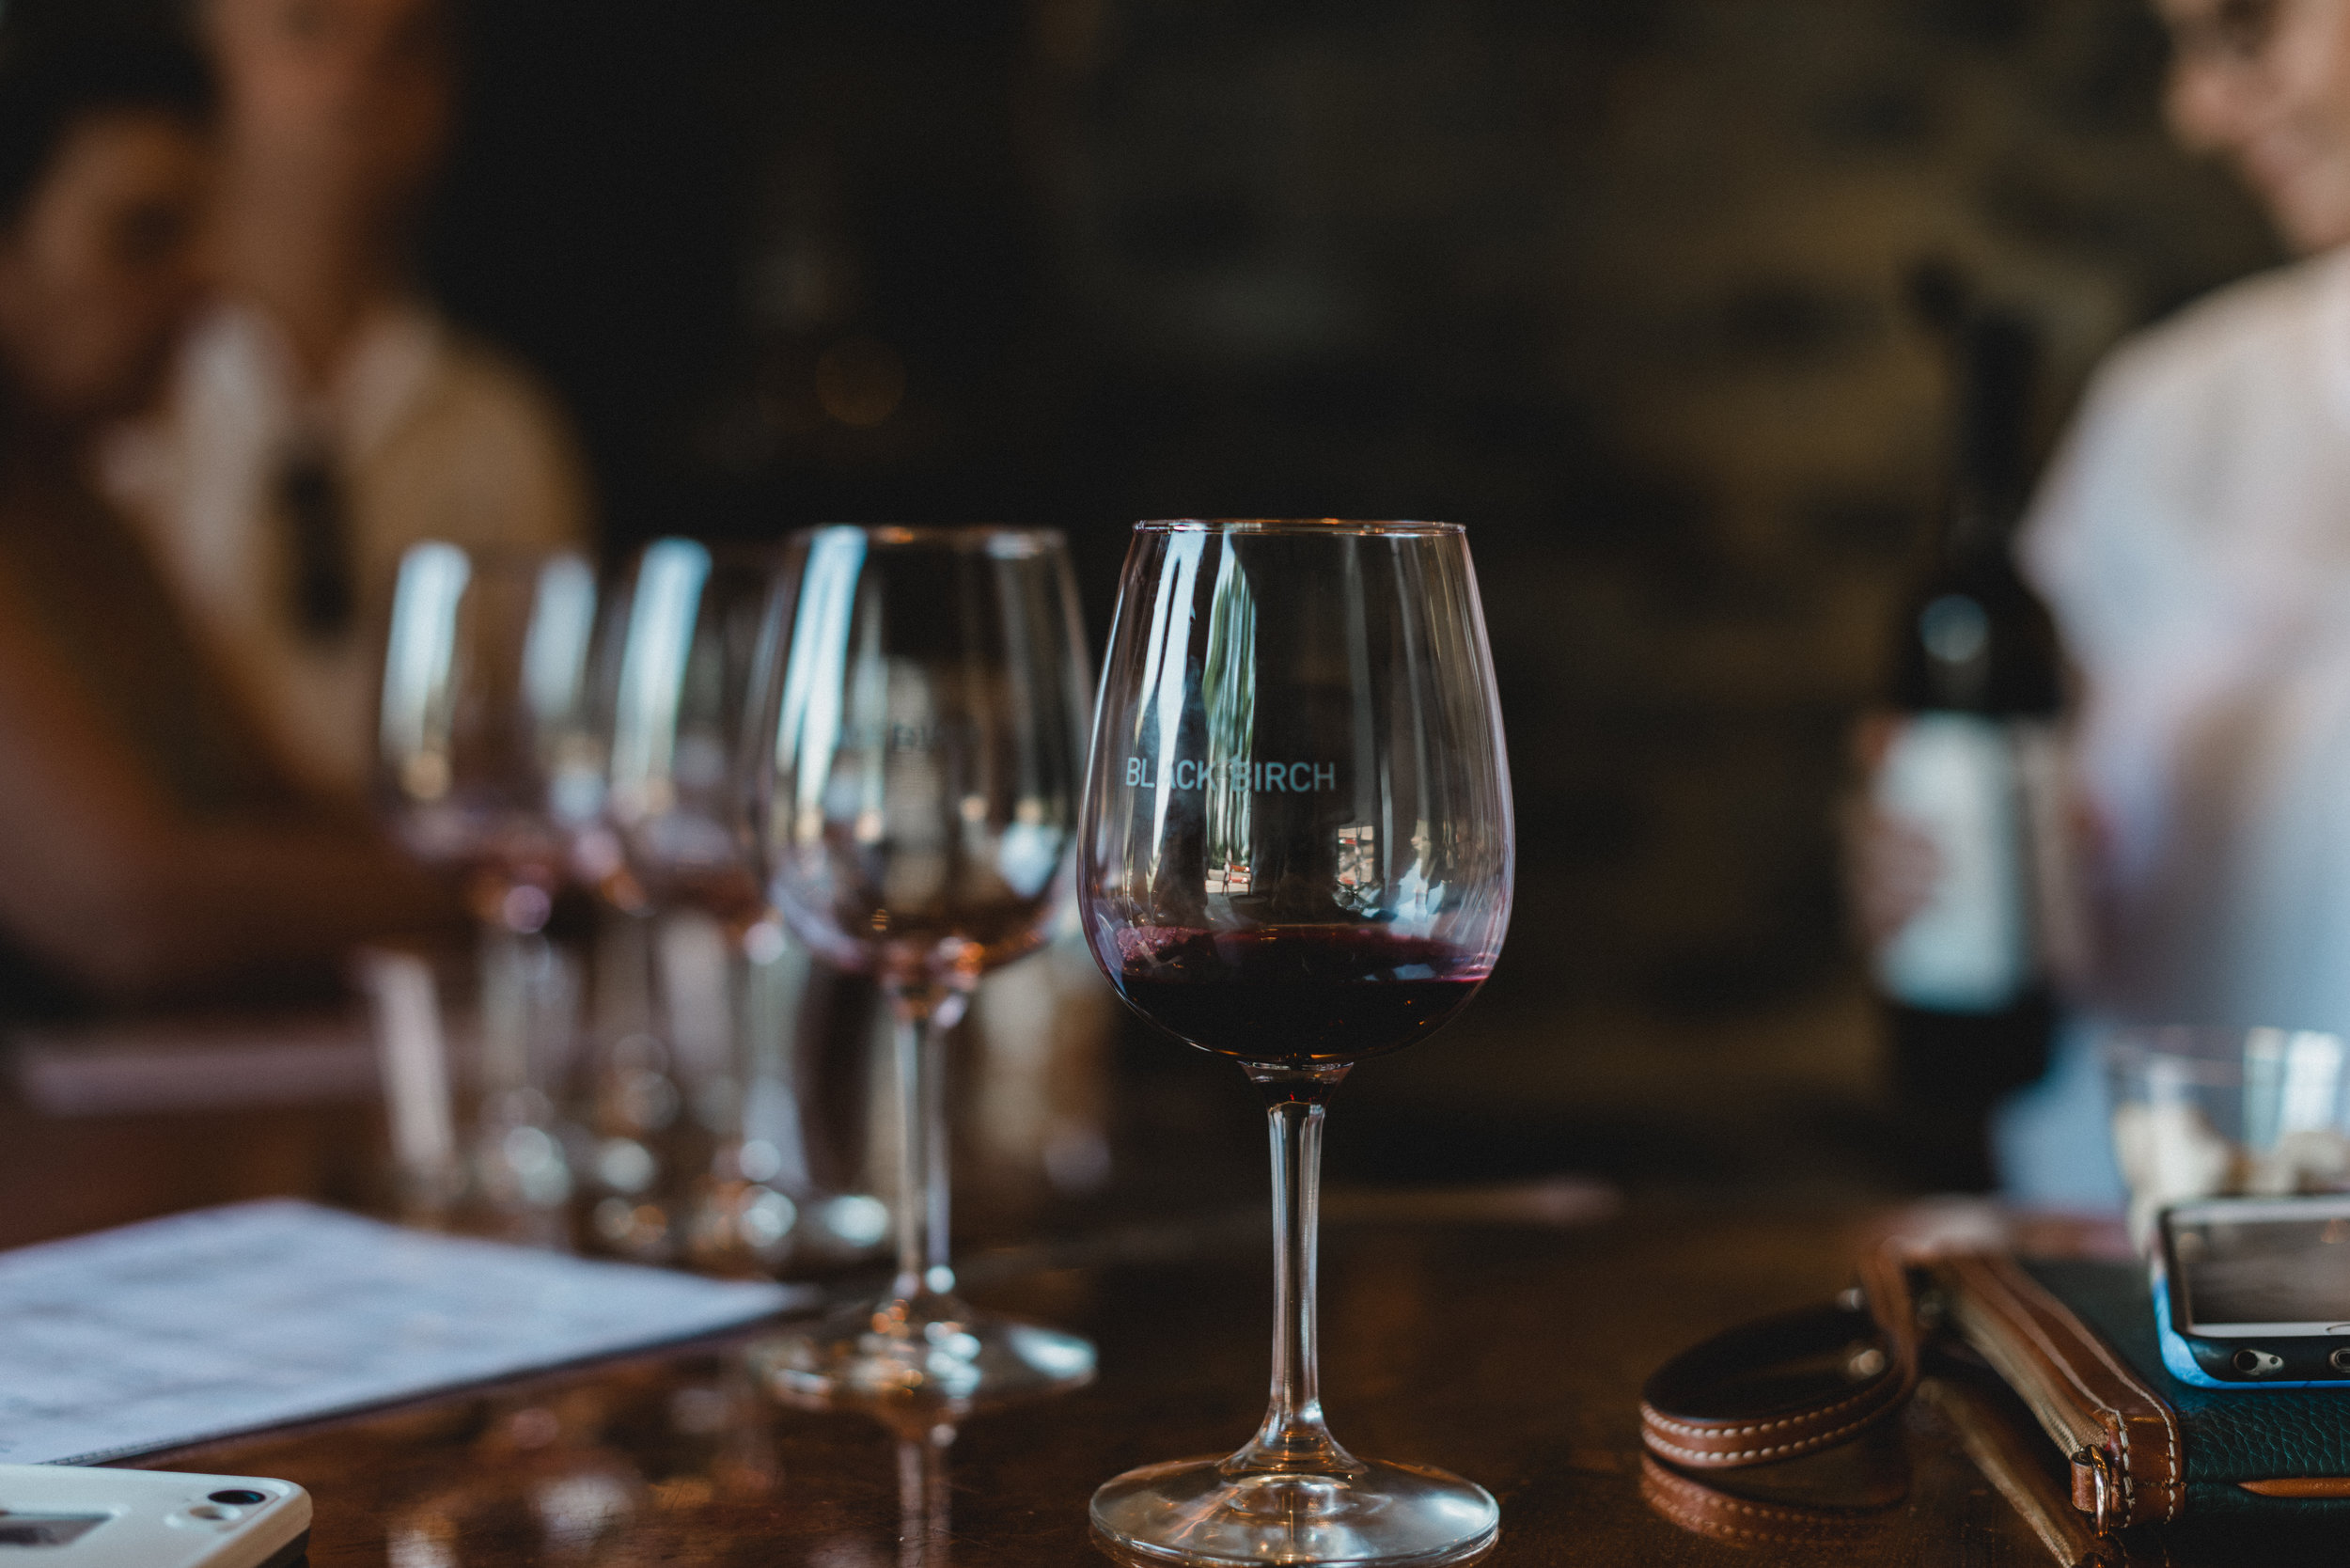 where tobuy our wines - Our wines are available for purchase at the vineyard and at select stores in Massachusetts. Sign up for a free membership to our Wine Club for 3 bottles per season at a discounted price, access to special reserves, member-only events, and other exclusive perks